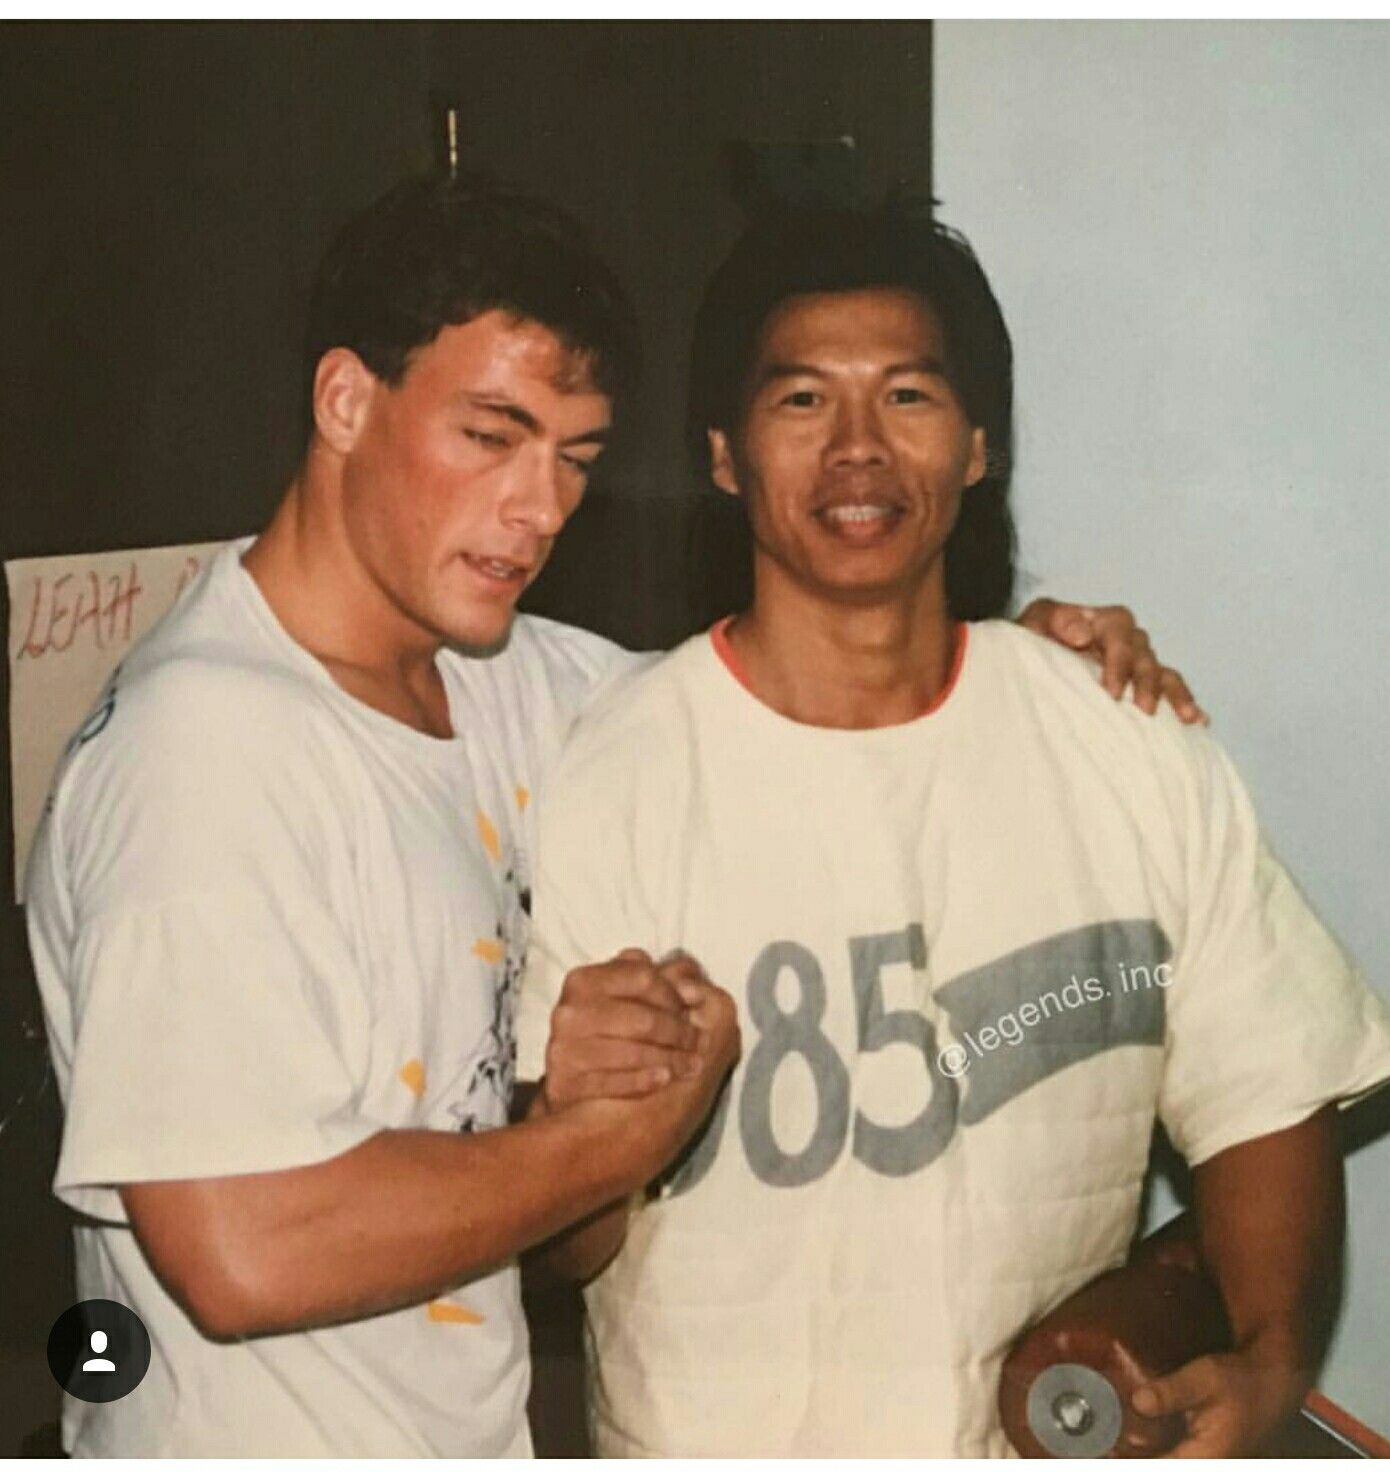 ¿Cuánto mide Bolo Yeung? - Altura - Real height C1868ed64050350f660572b0aa007b9d